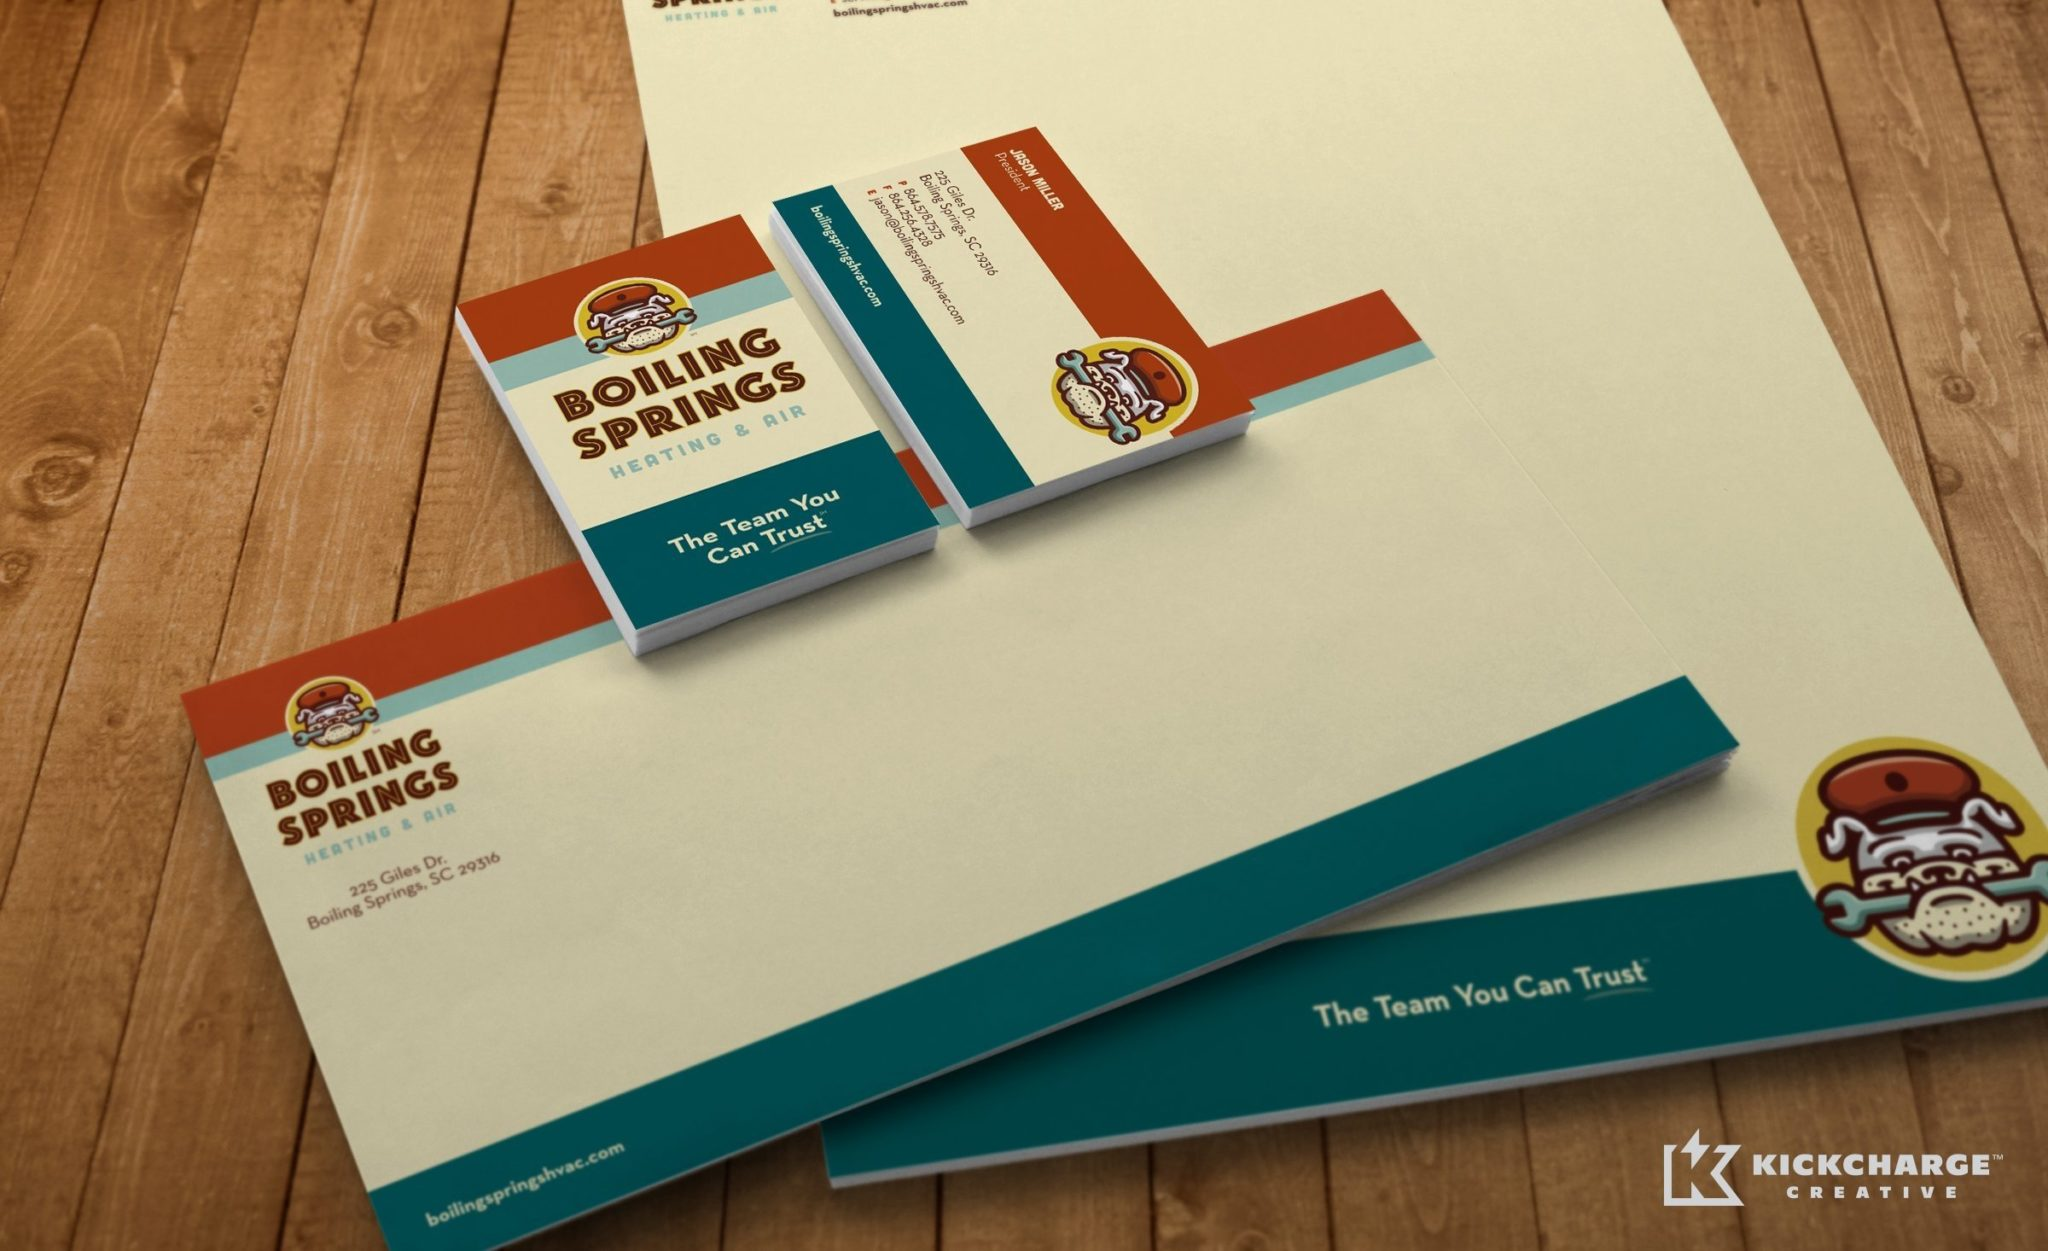 HVAC stationery design and branding for this mechanical contractor in Boiling Springs, SC.